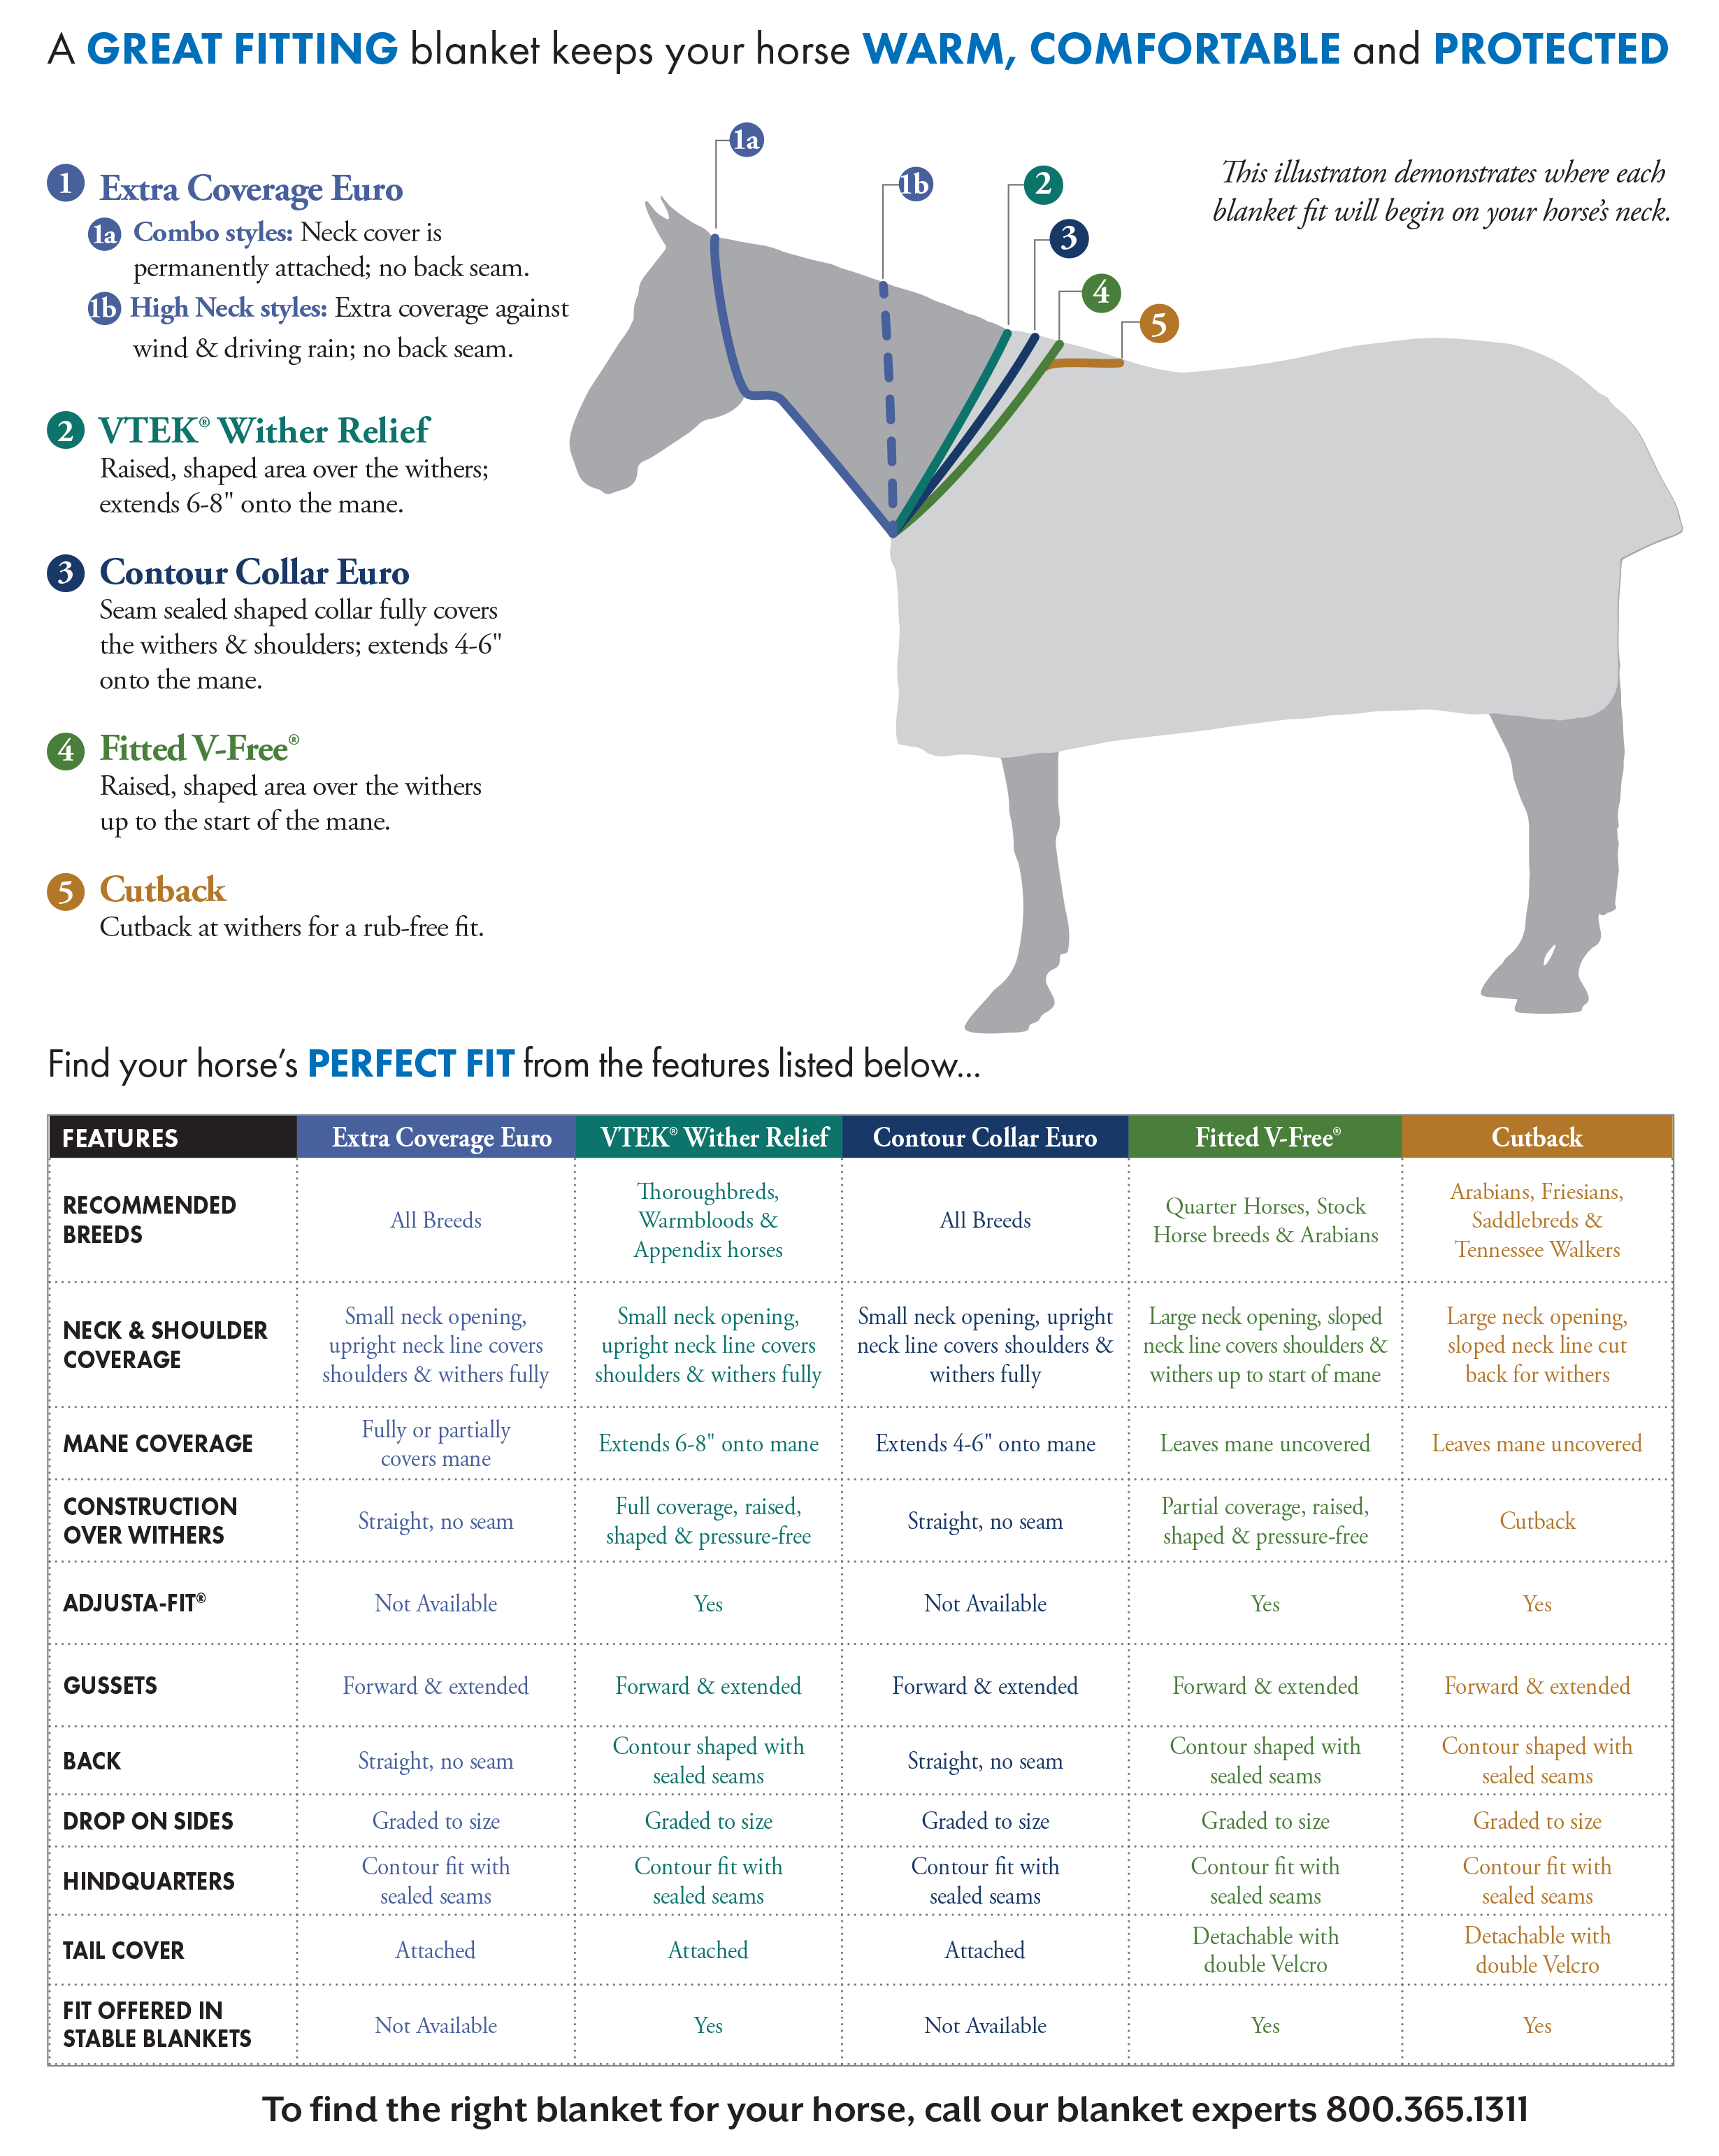 Find your horse's perfect FIT with our Schneider's Horse Turnout Blanket Fit Guide